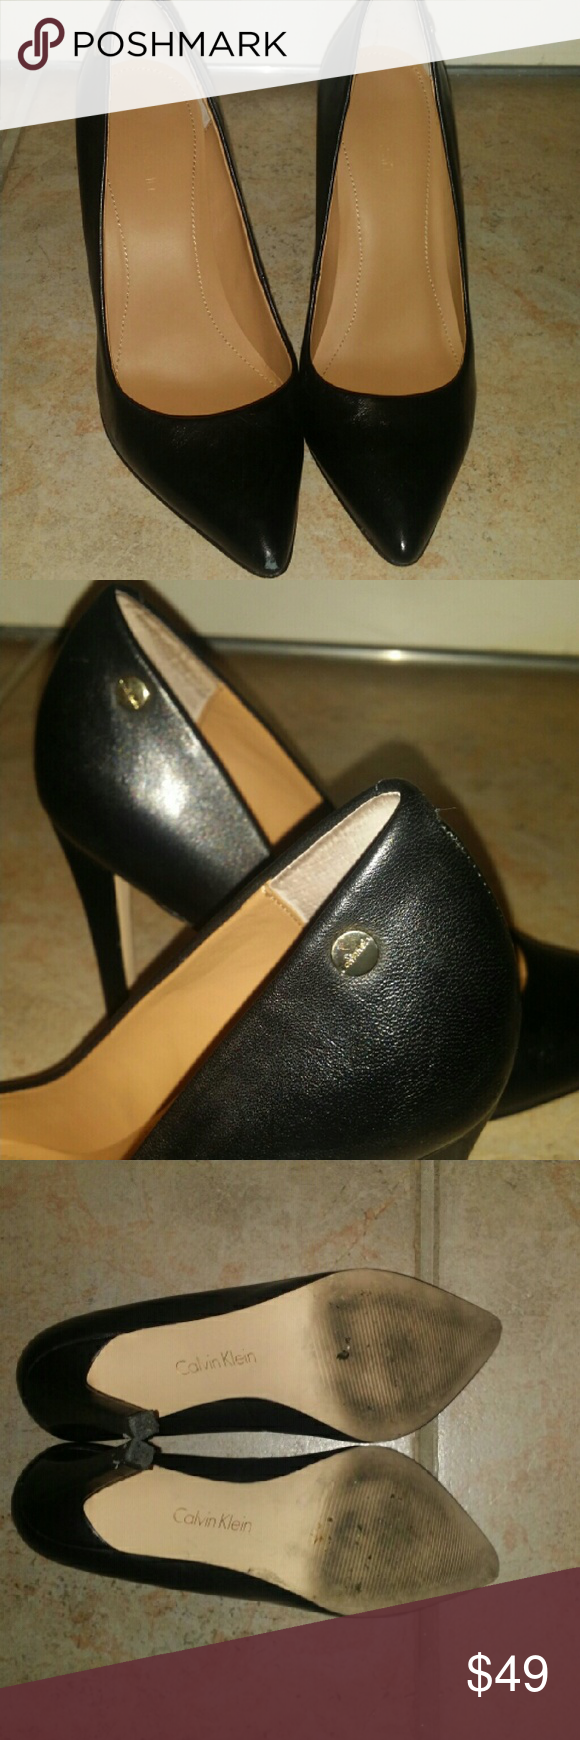 defadab298aa Calvin Klein Brady Pumps Heels - Size 6 Classic style never gets old. The